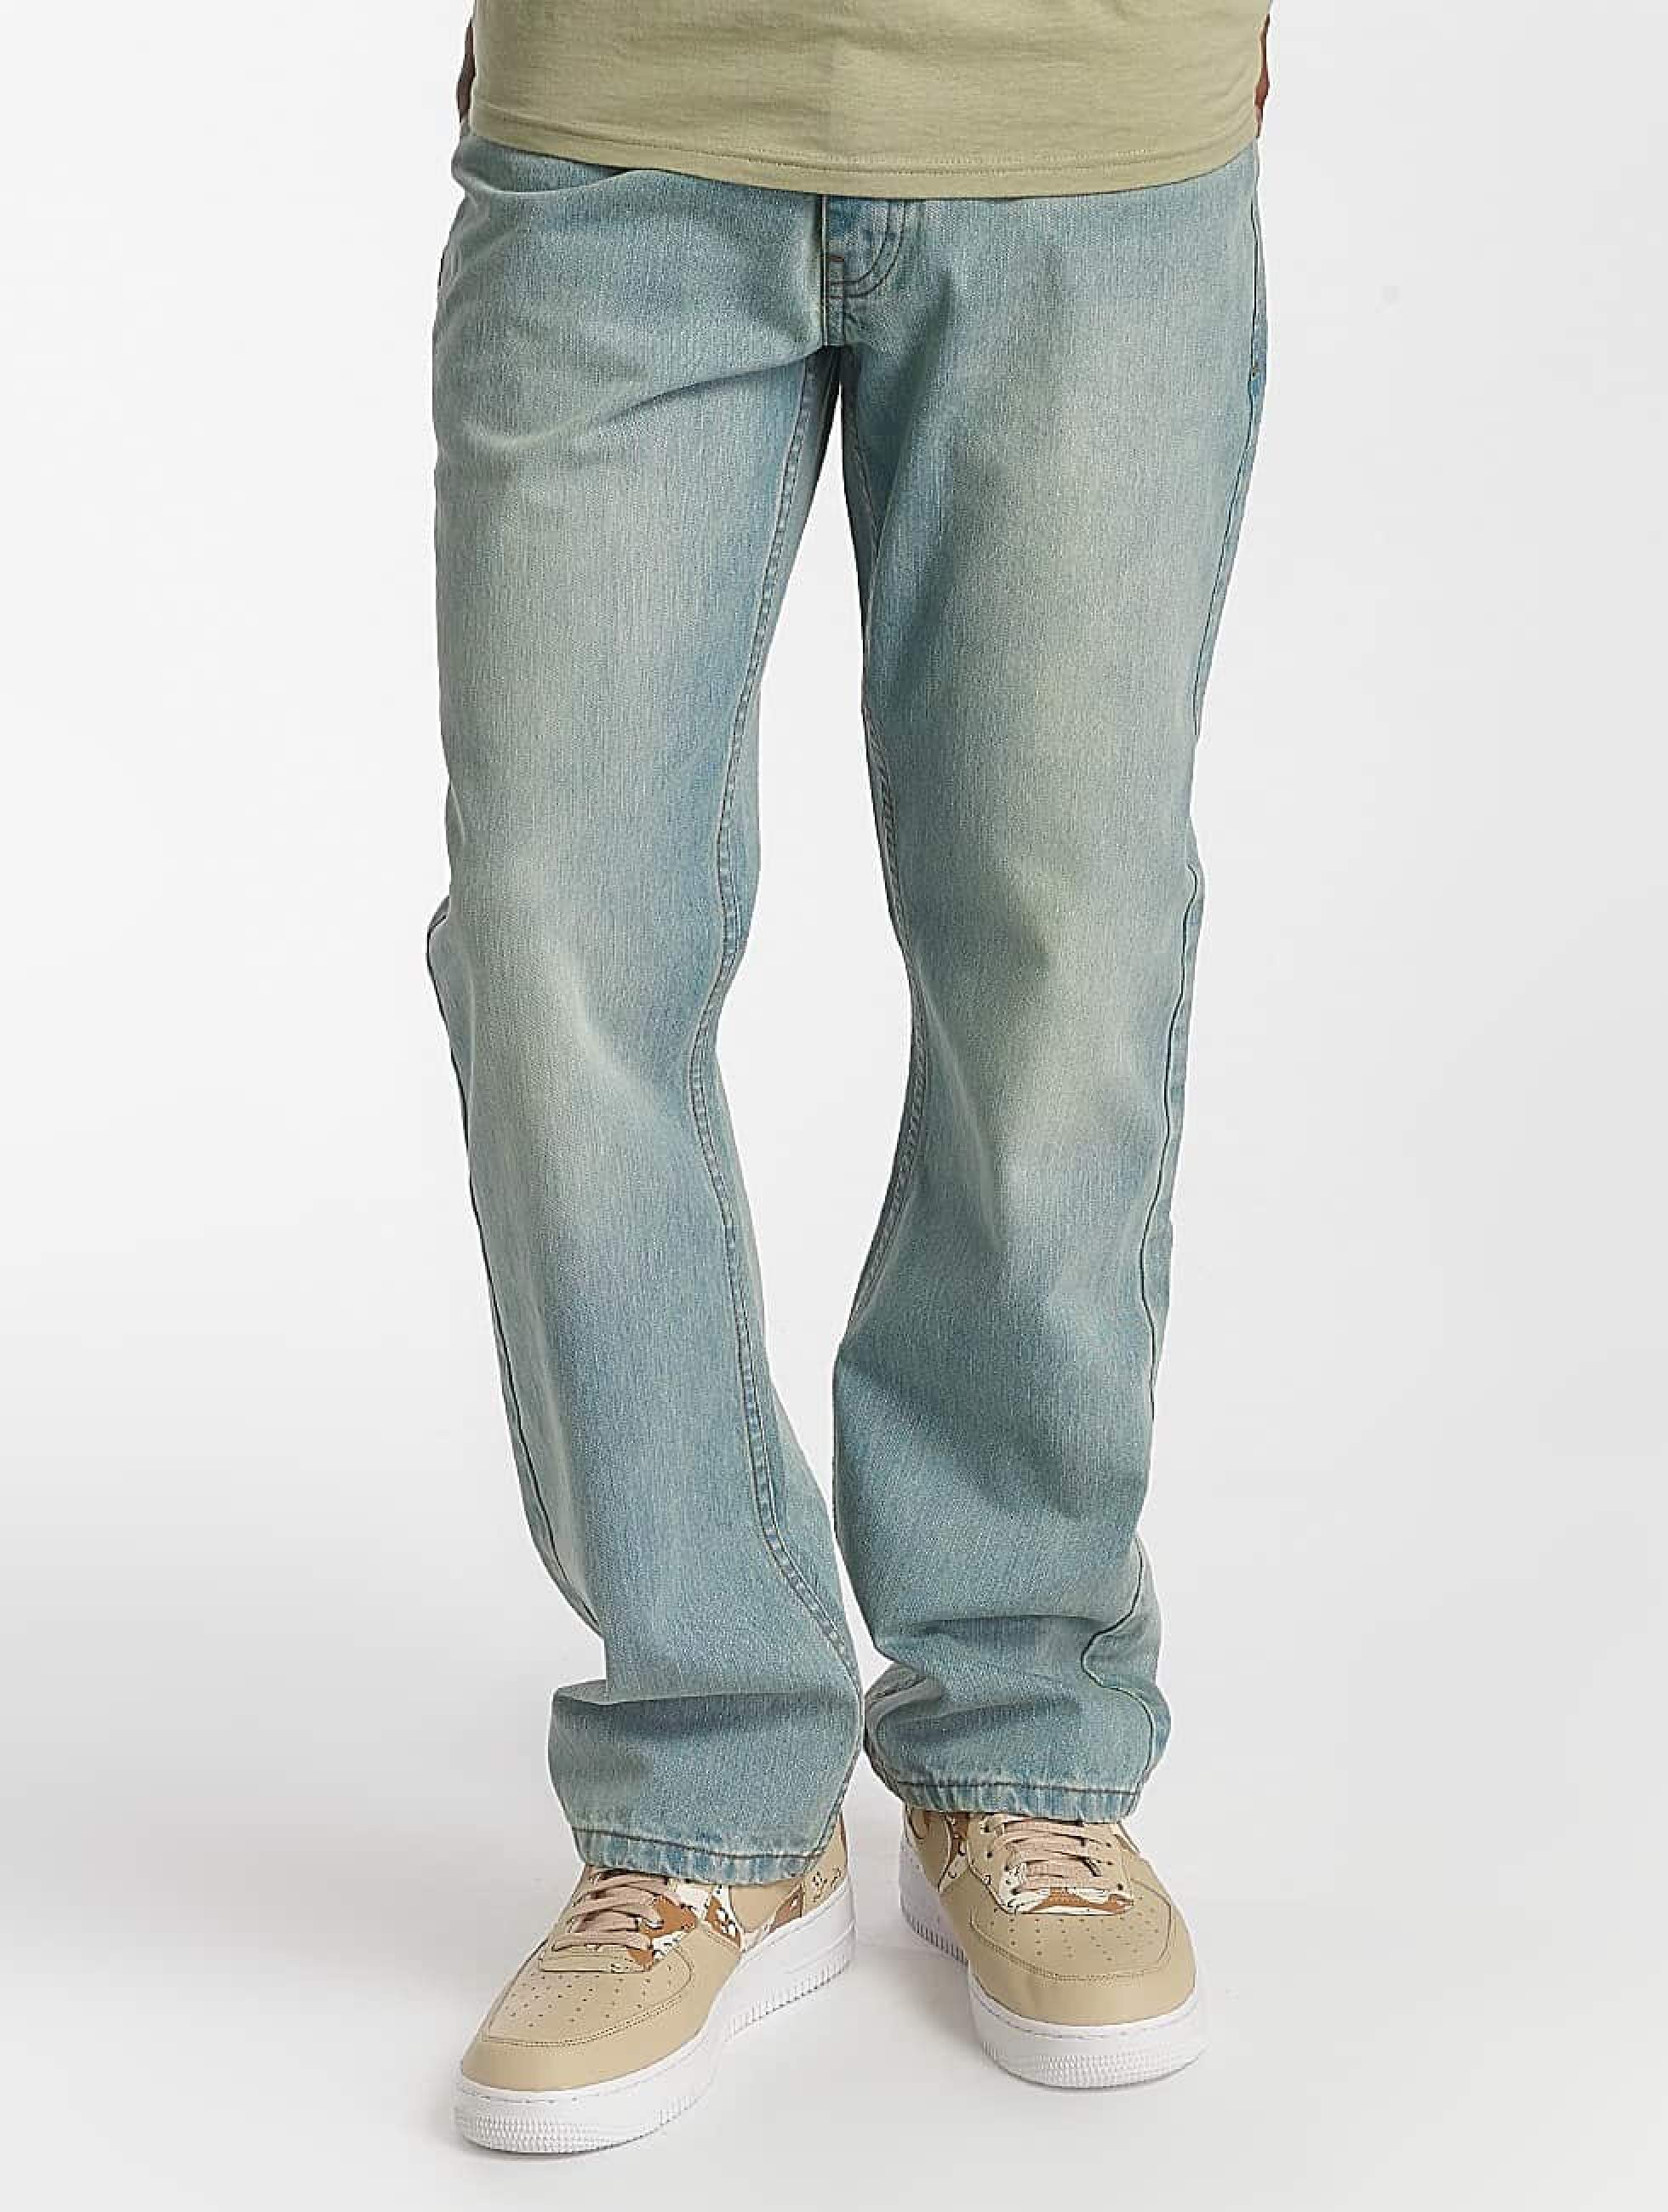 Rocawear / Loose Fit Jeans Loose Fit in blue W 33